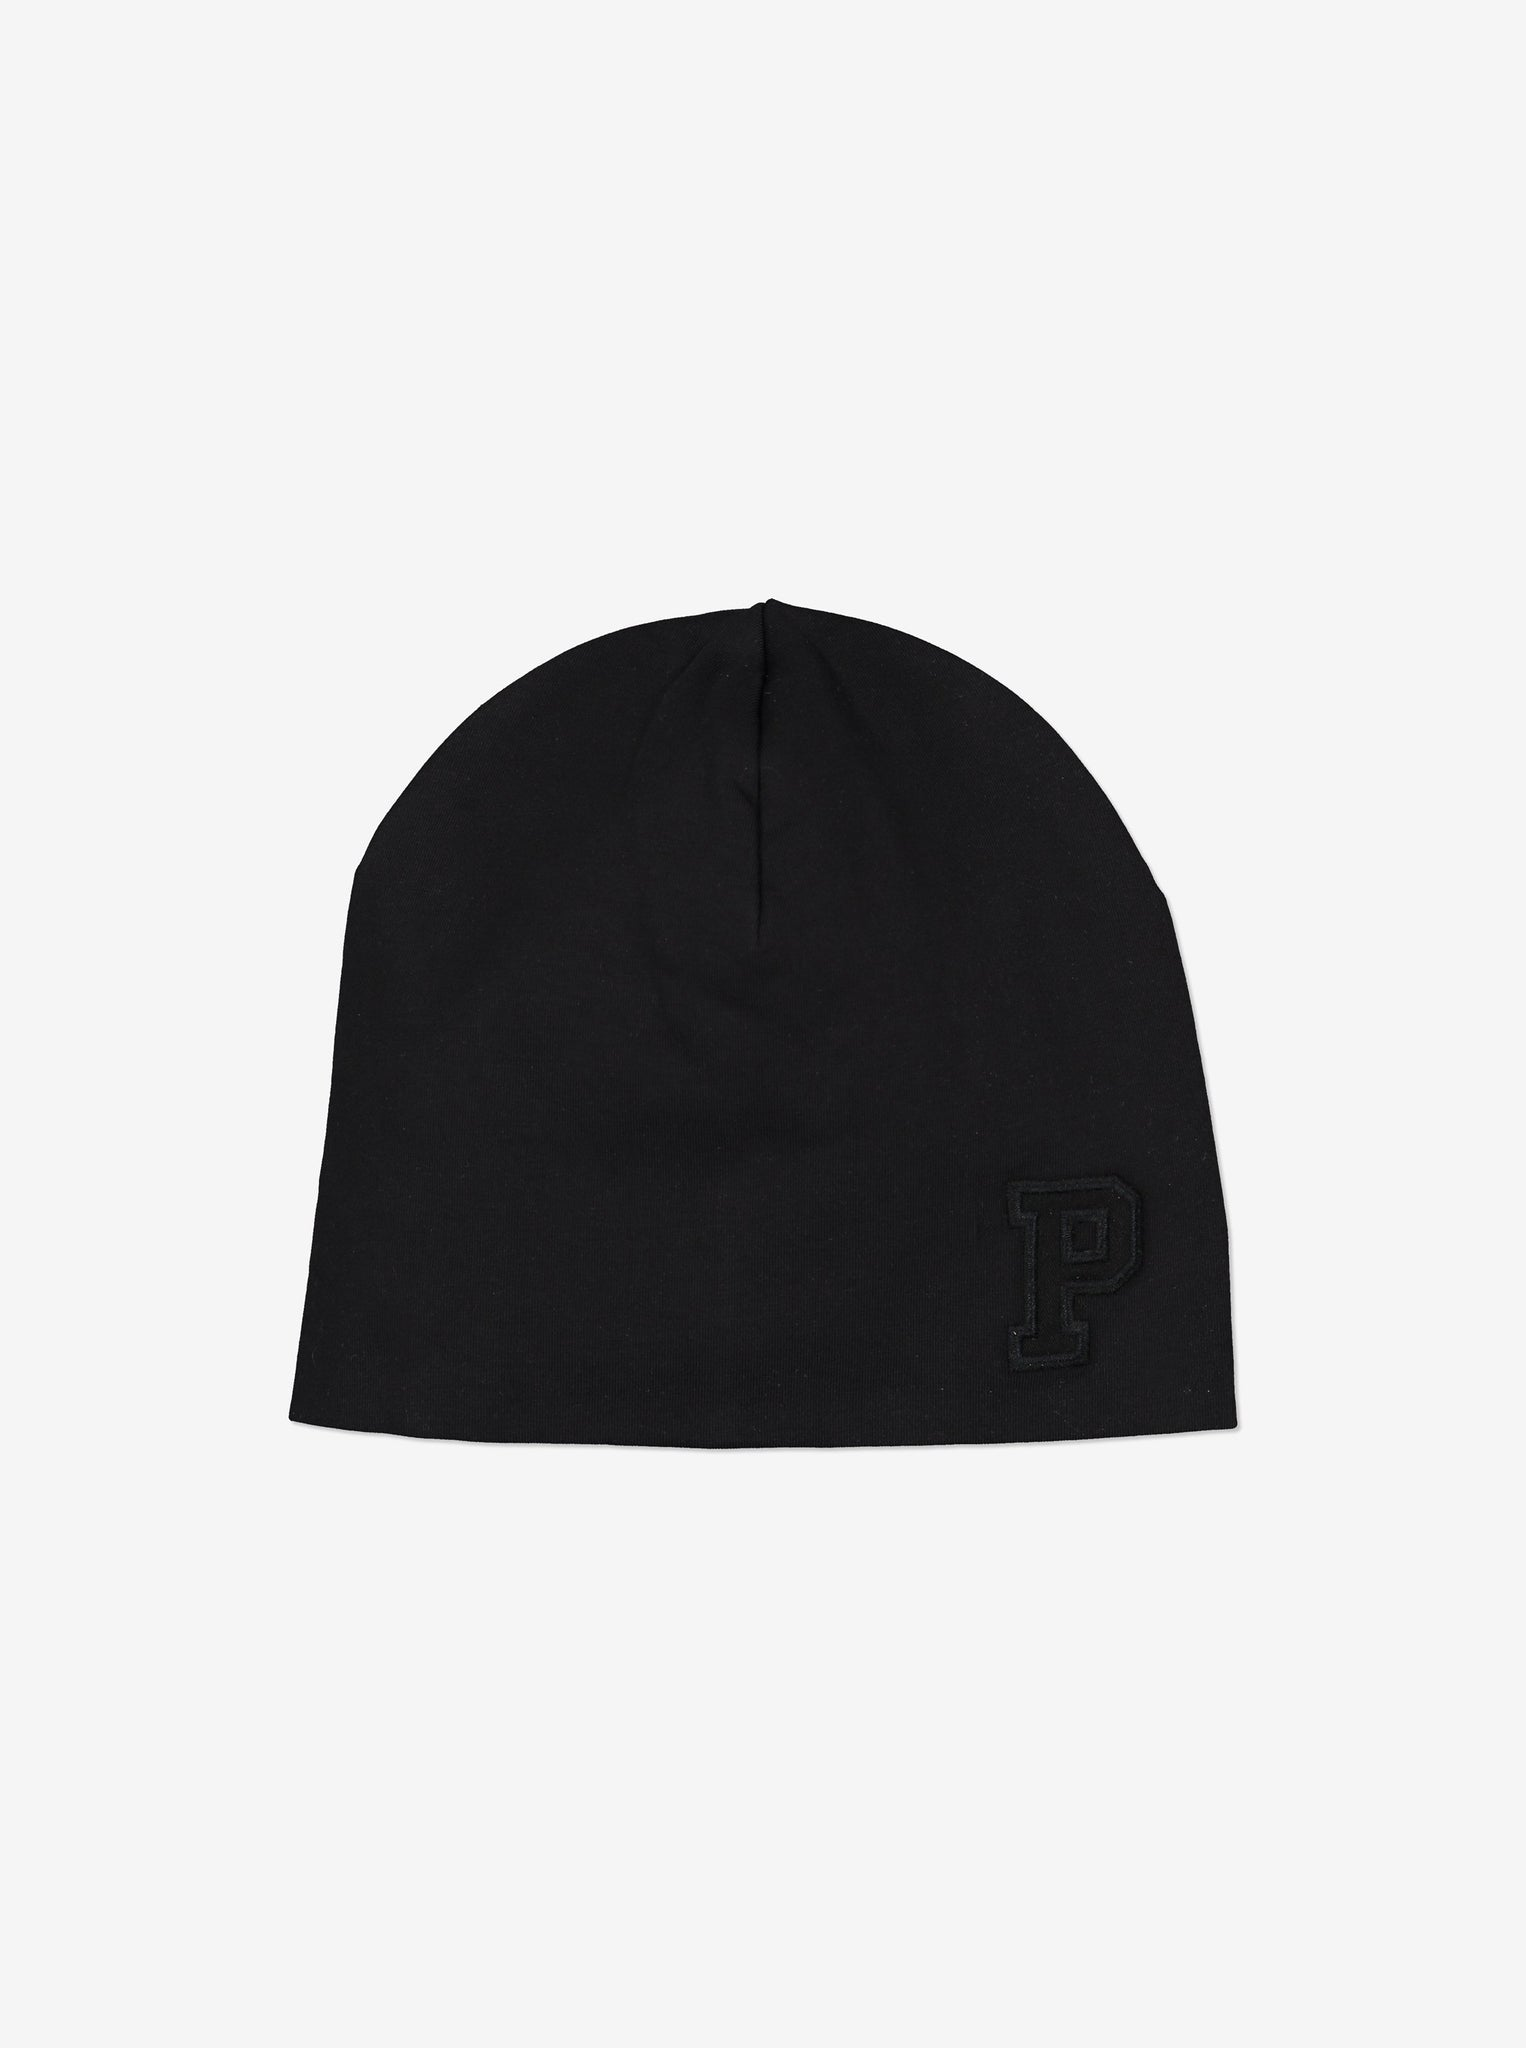 Kids Organic Cotton Black Beanie Hat